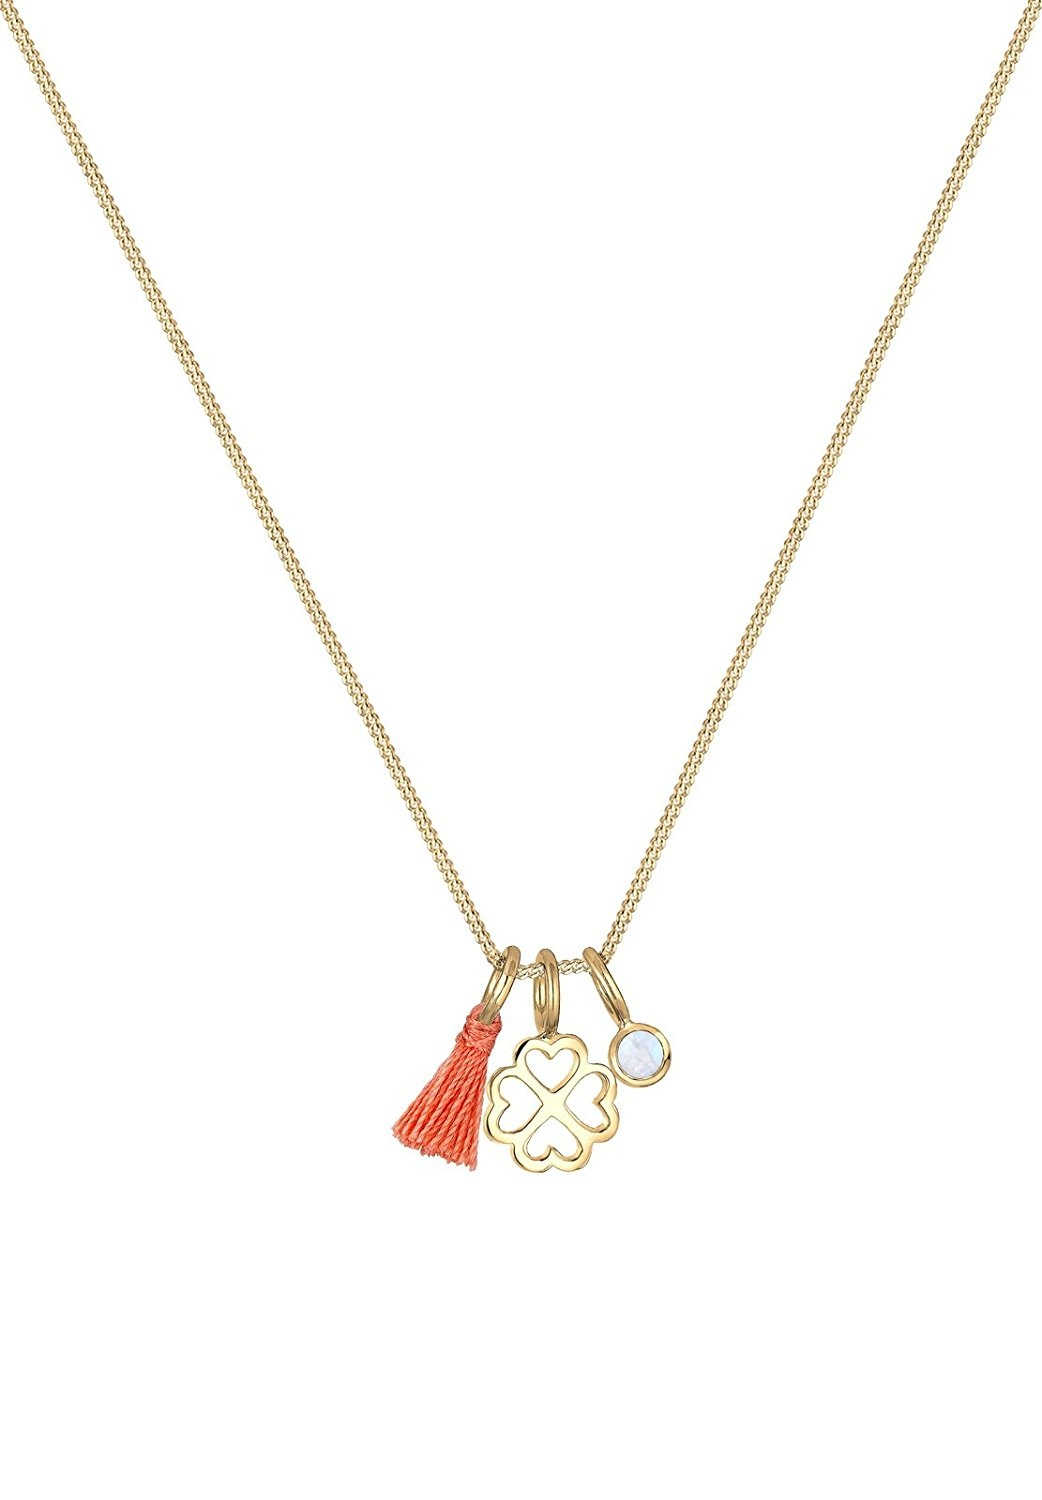 KnSam Women Gold Plate Chain Necklaces Plant Gold Novelty Necklace